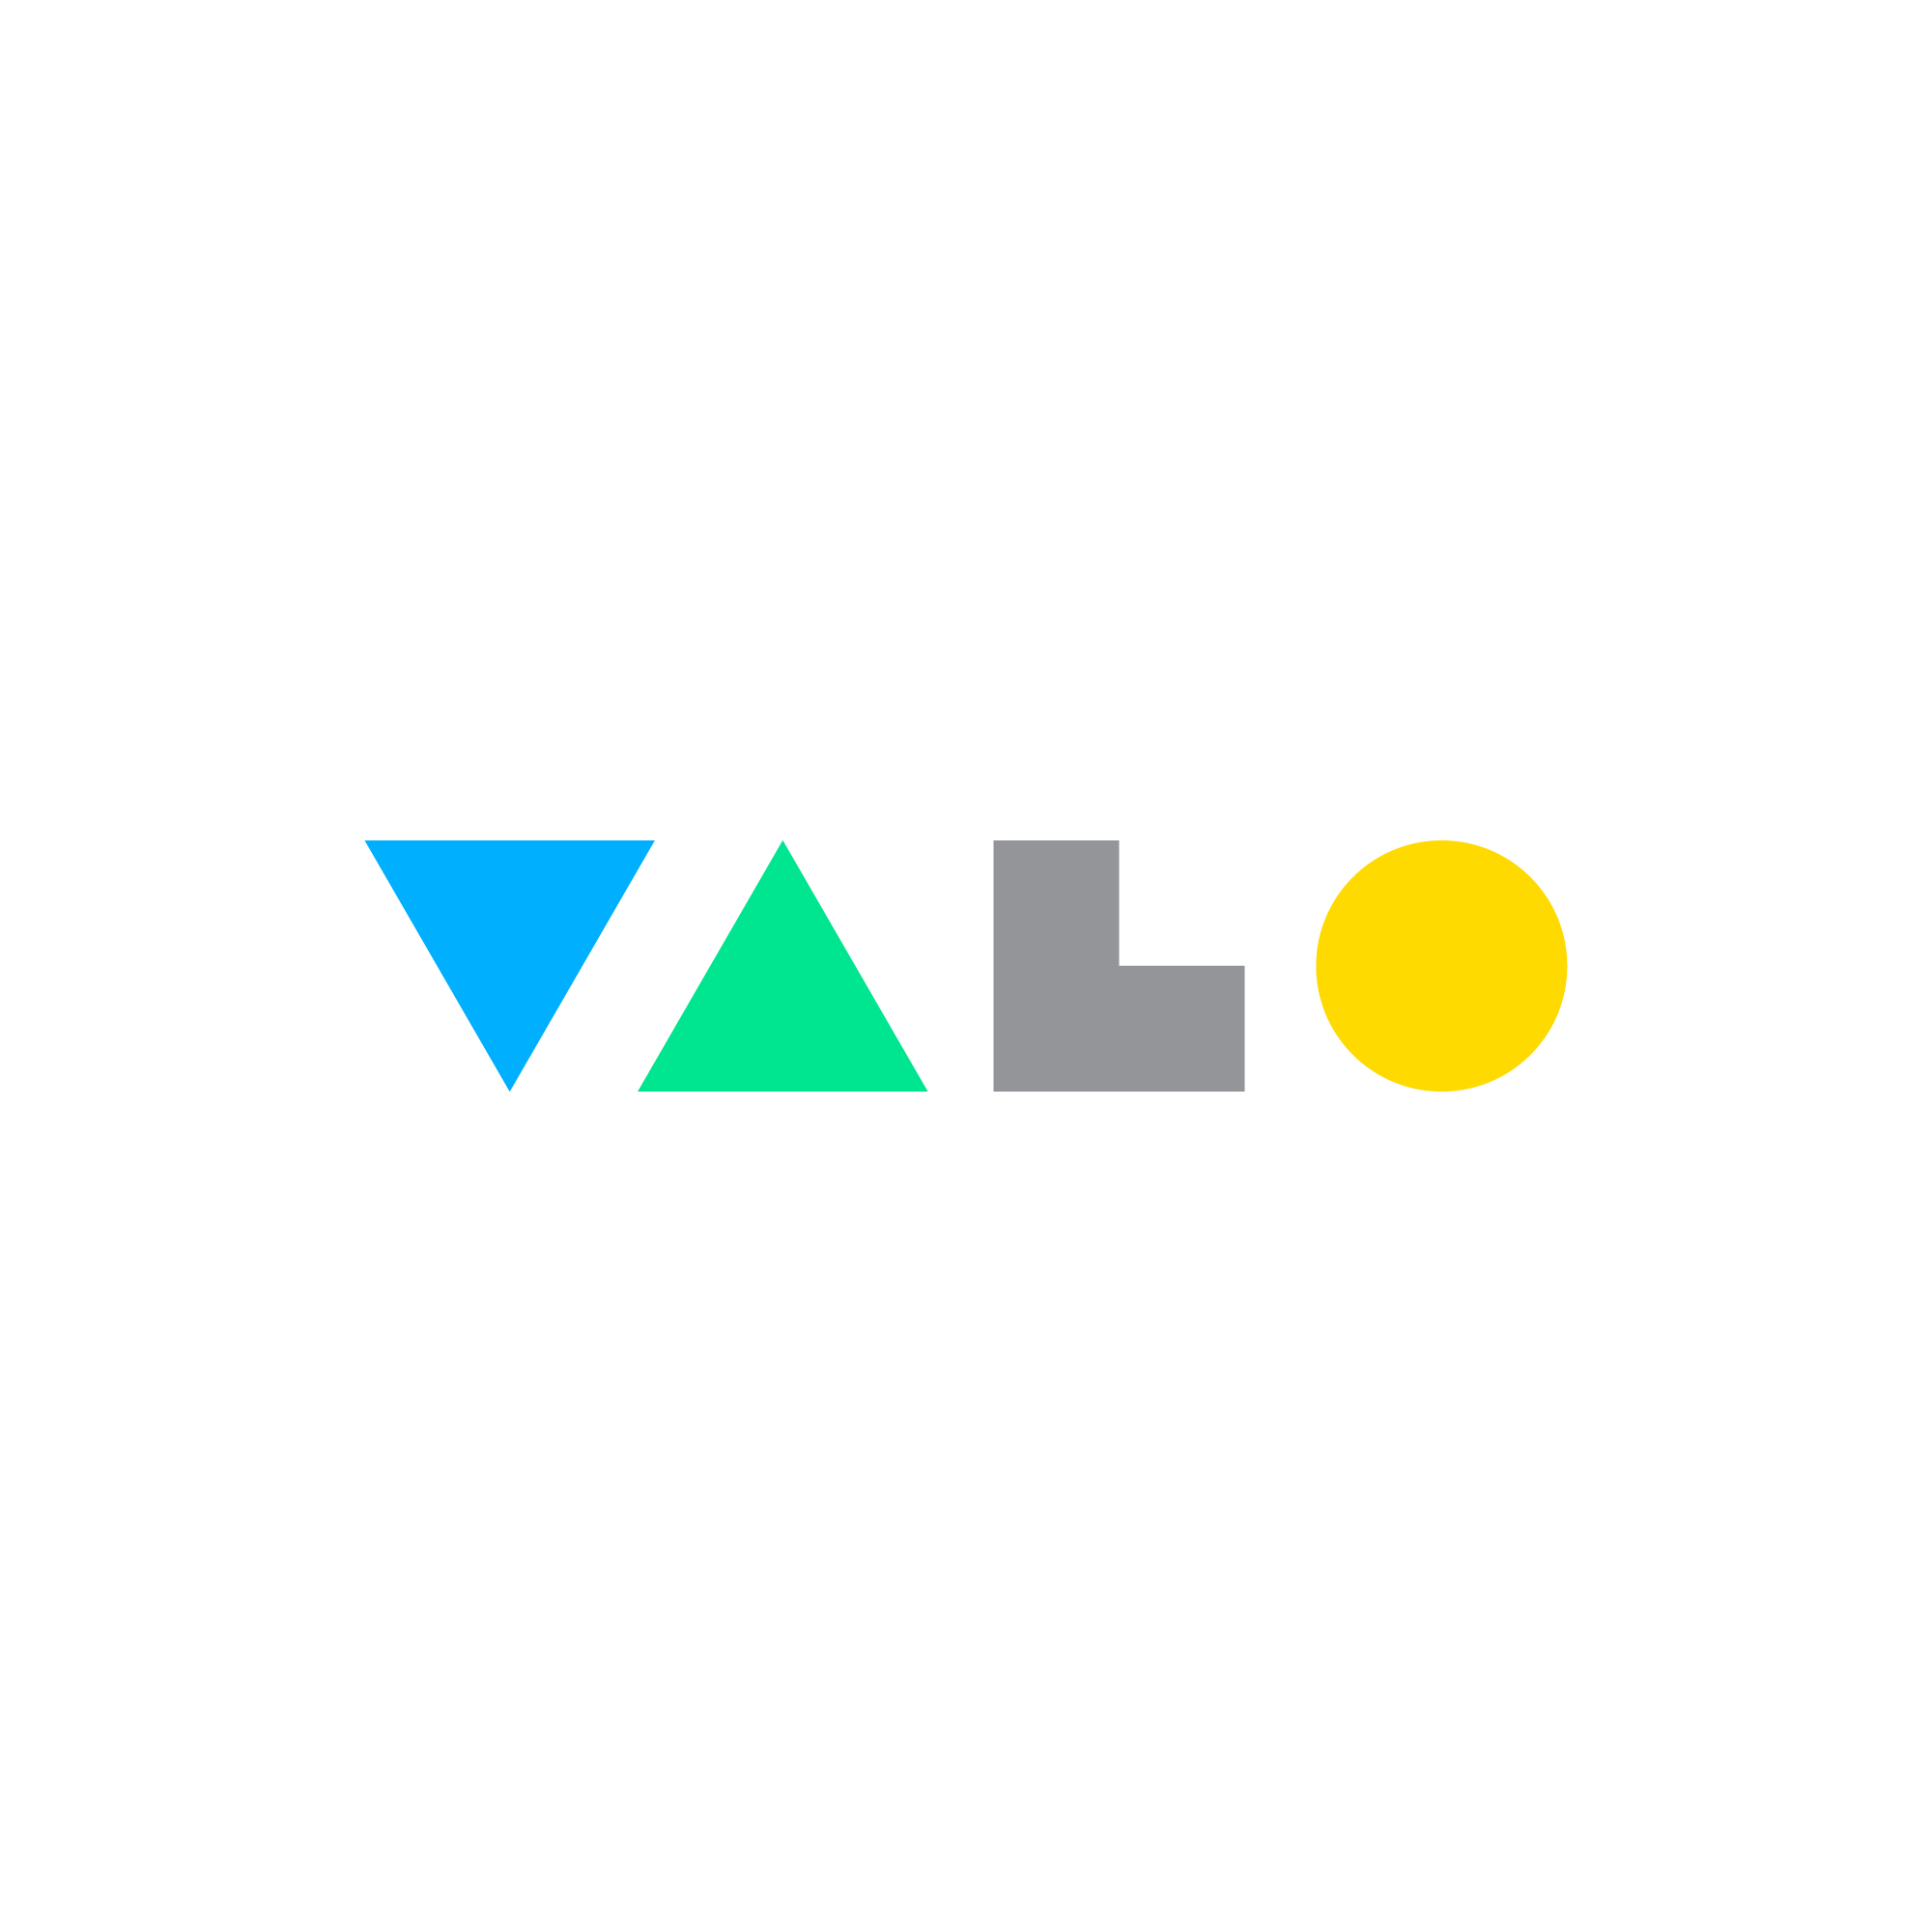 valo.png